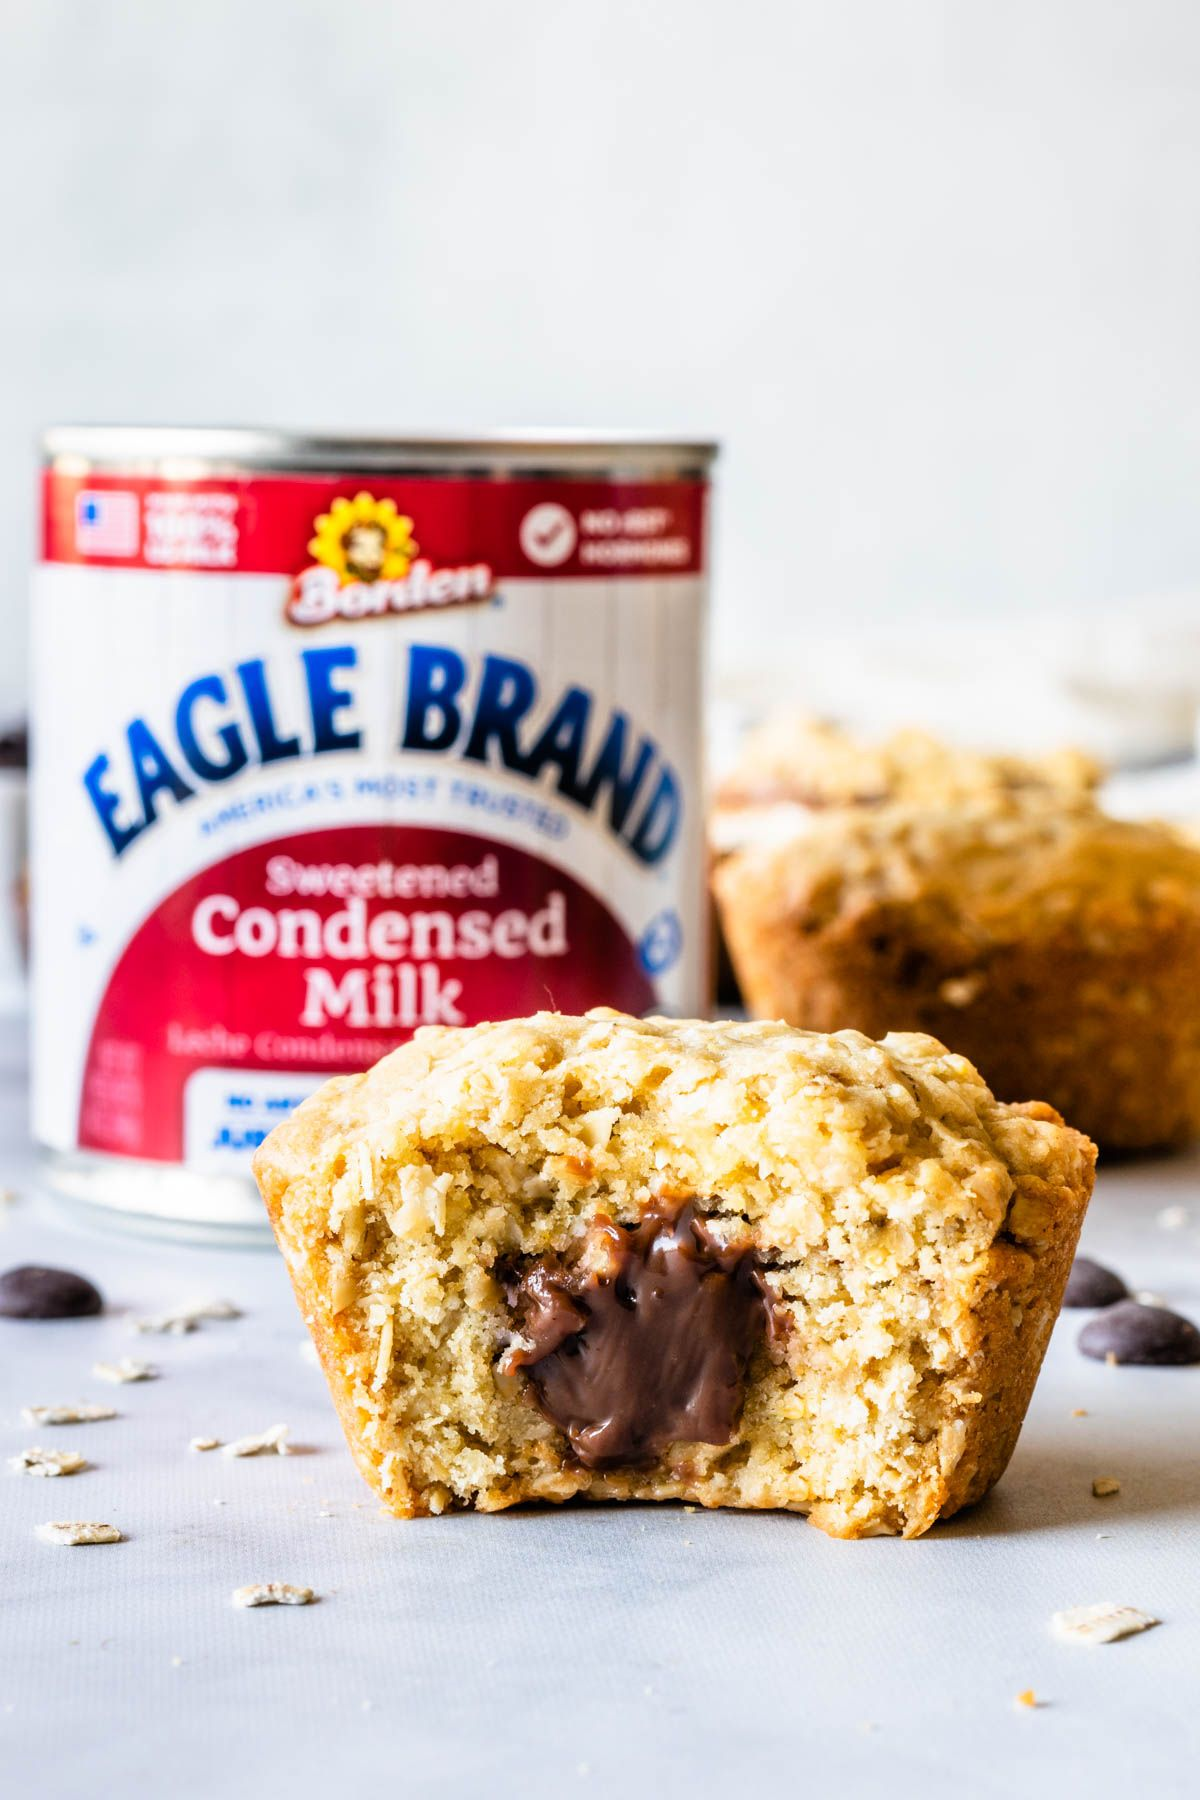 Baked Oatmeal Cups With Chocolate Filling Recipe In 2020 Baked Oatmeal Cups Milk Recipes Oatmeal Cups